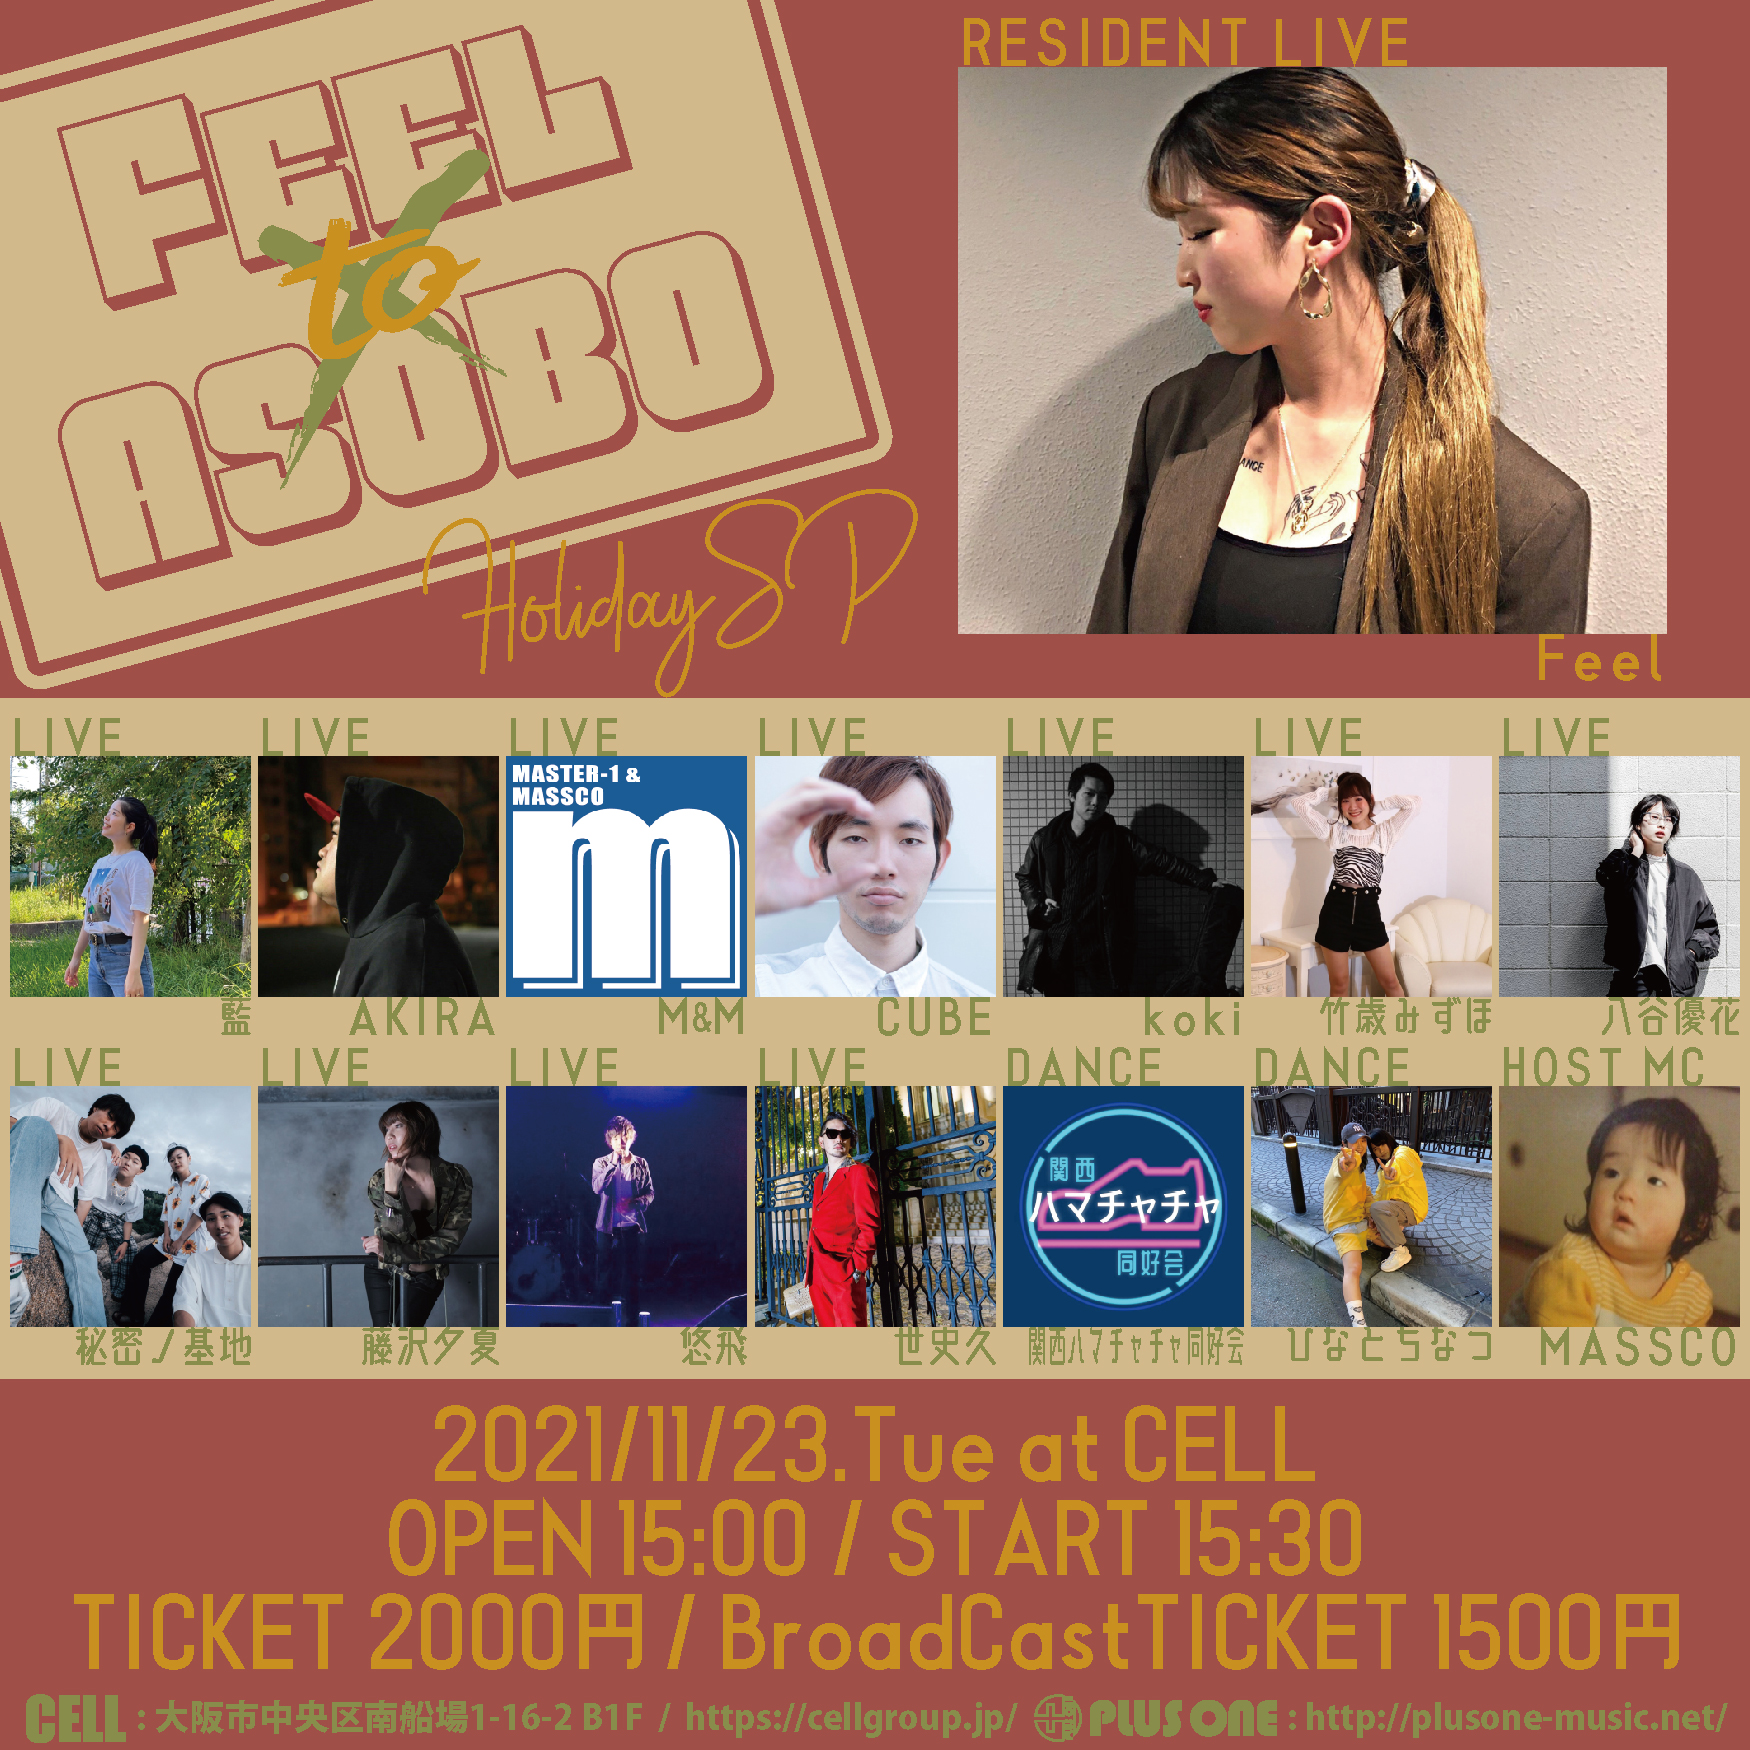 Feel to ASOBO #12 Holiday SP